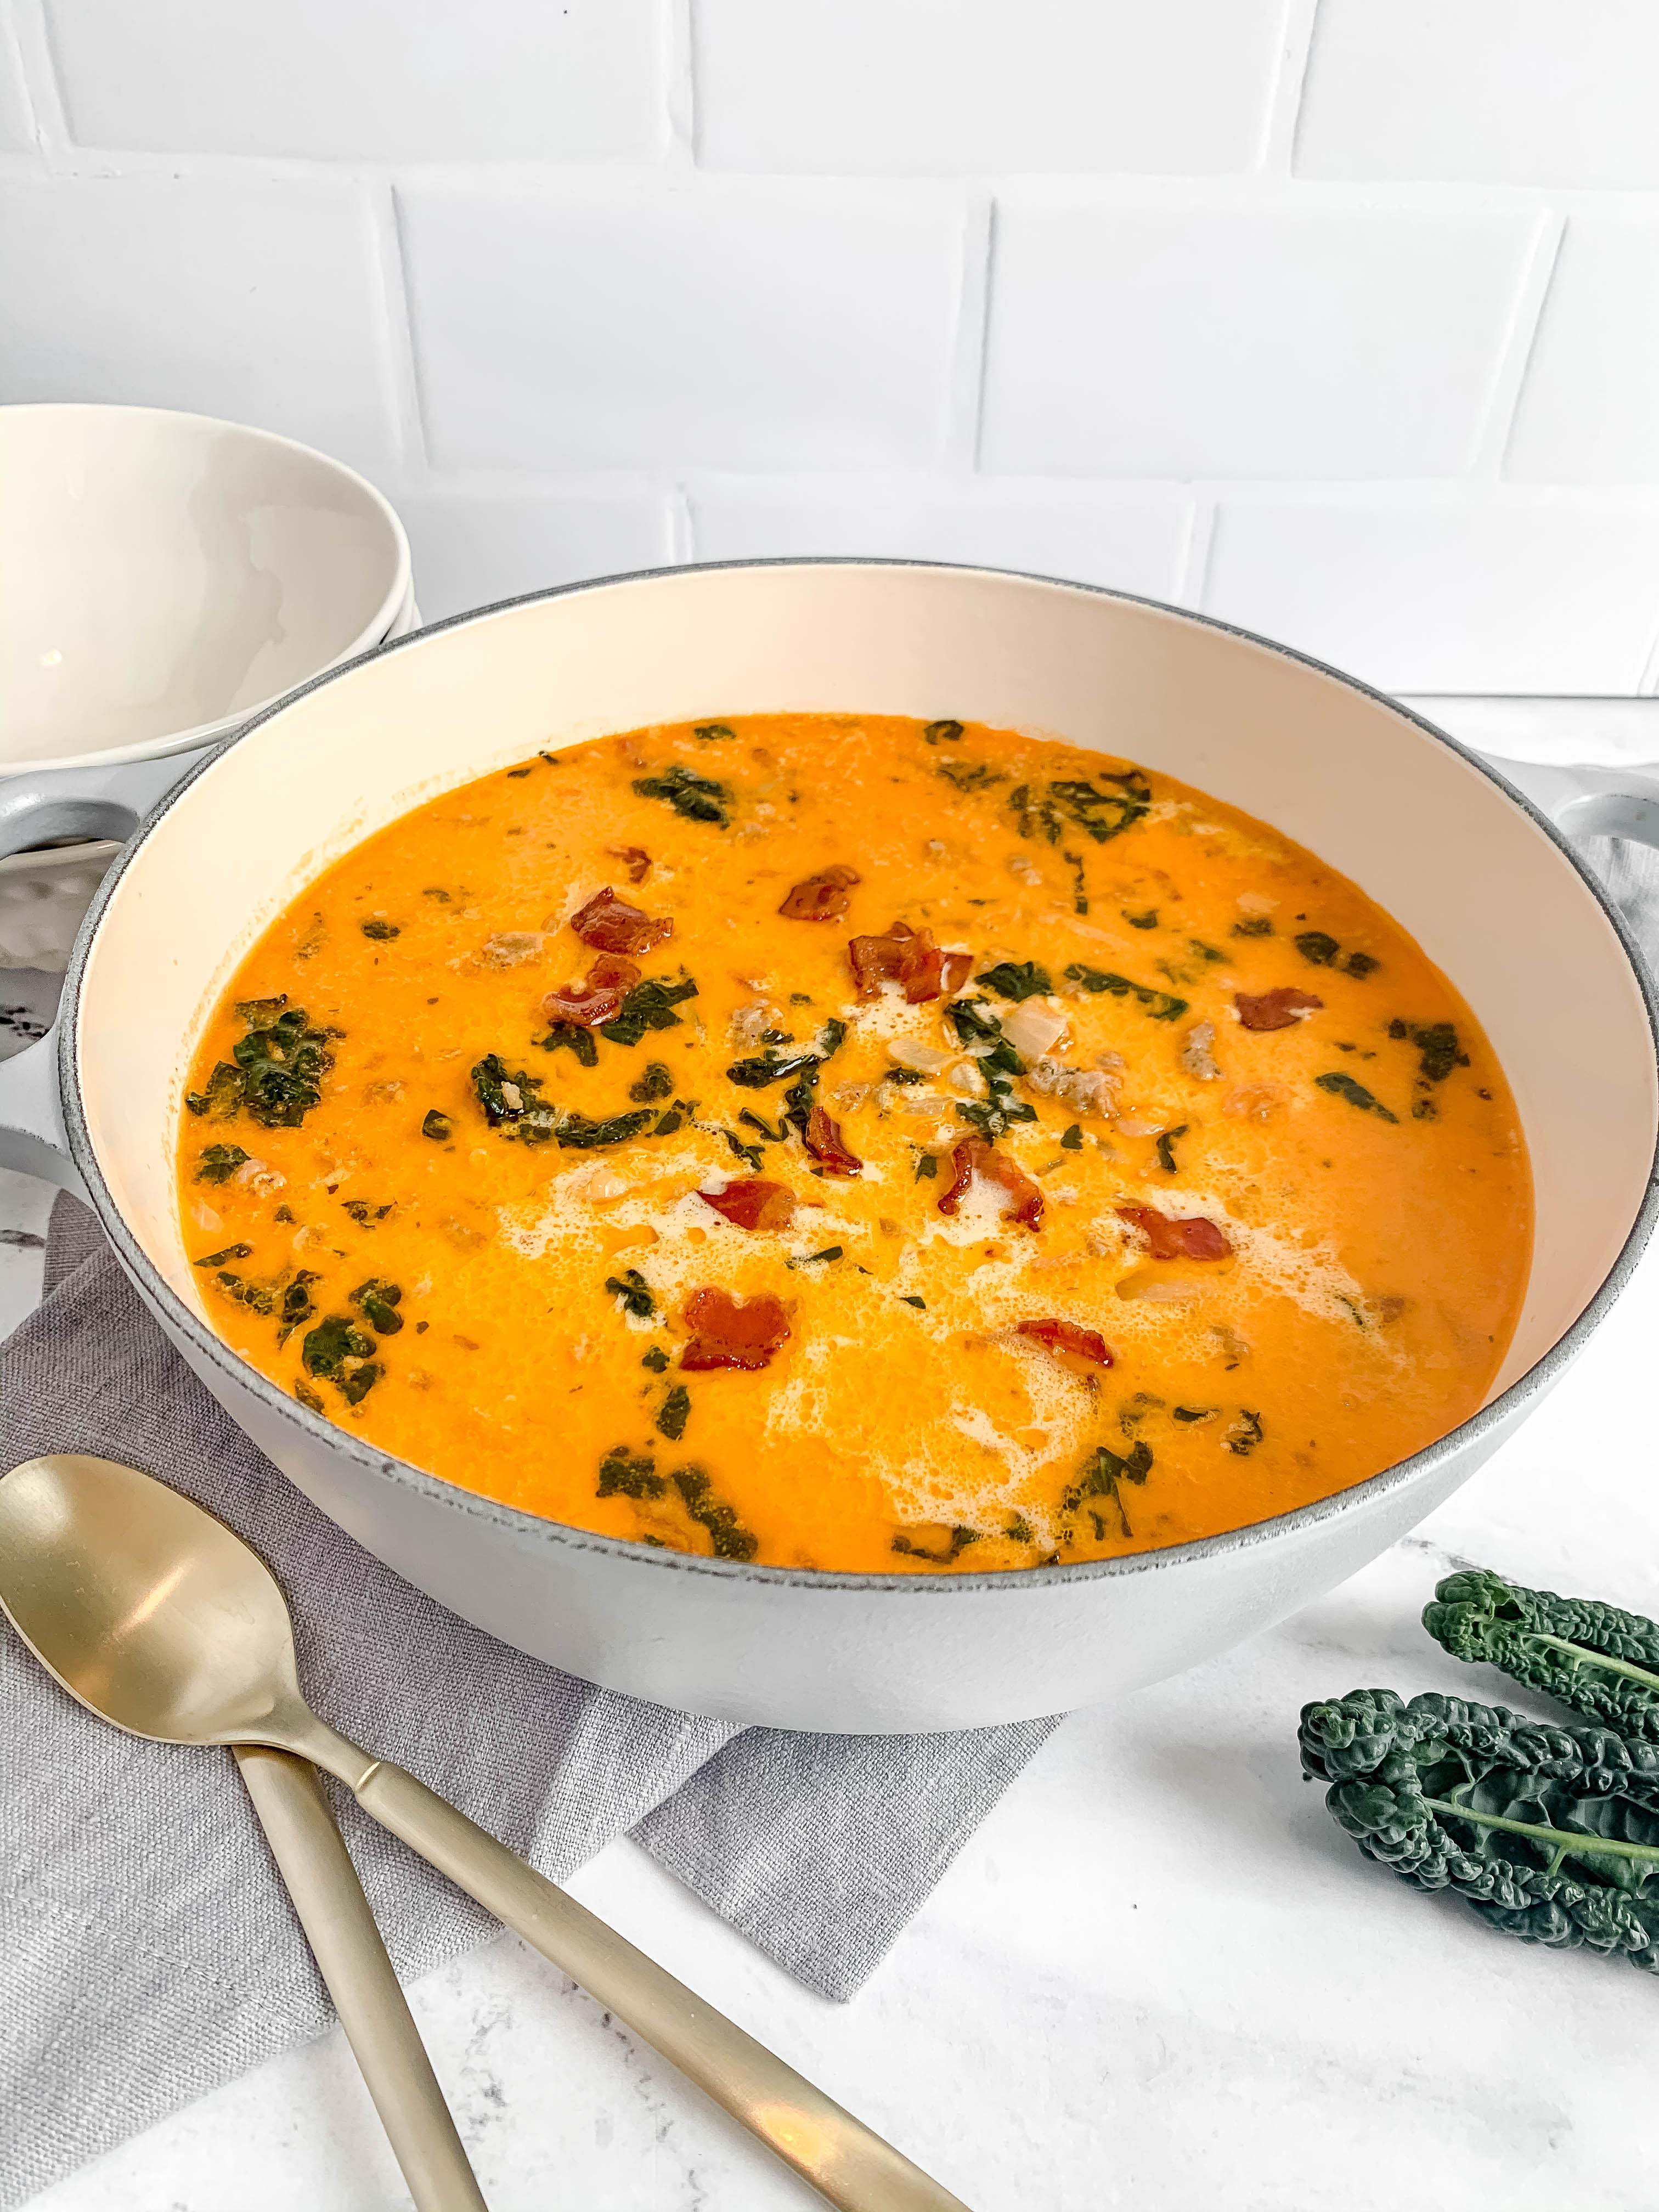 Easy But Amazing Italian Soup with White Beans, Kale, and Sausage